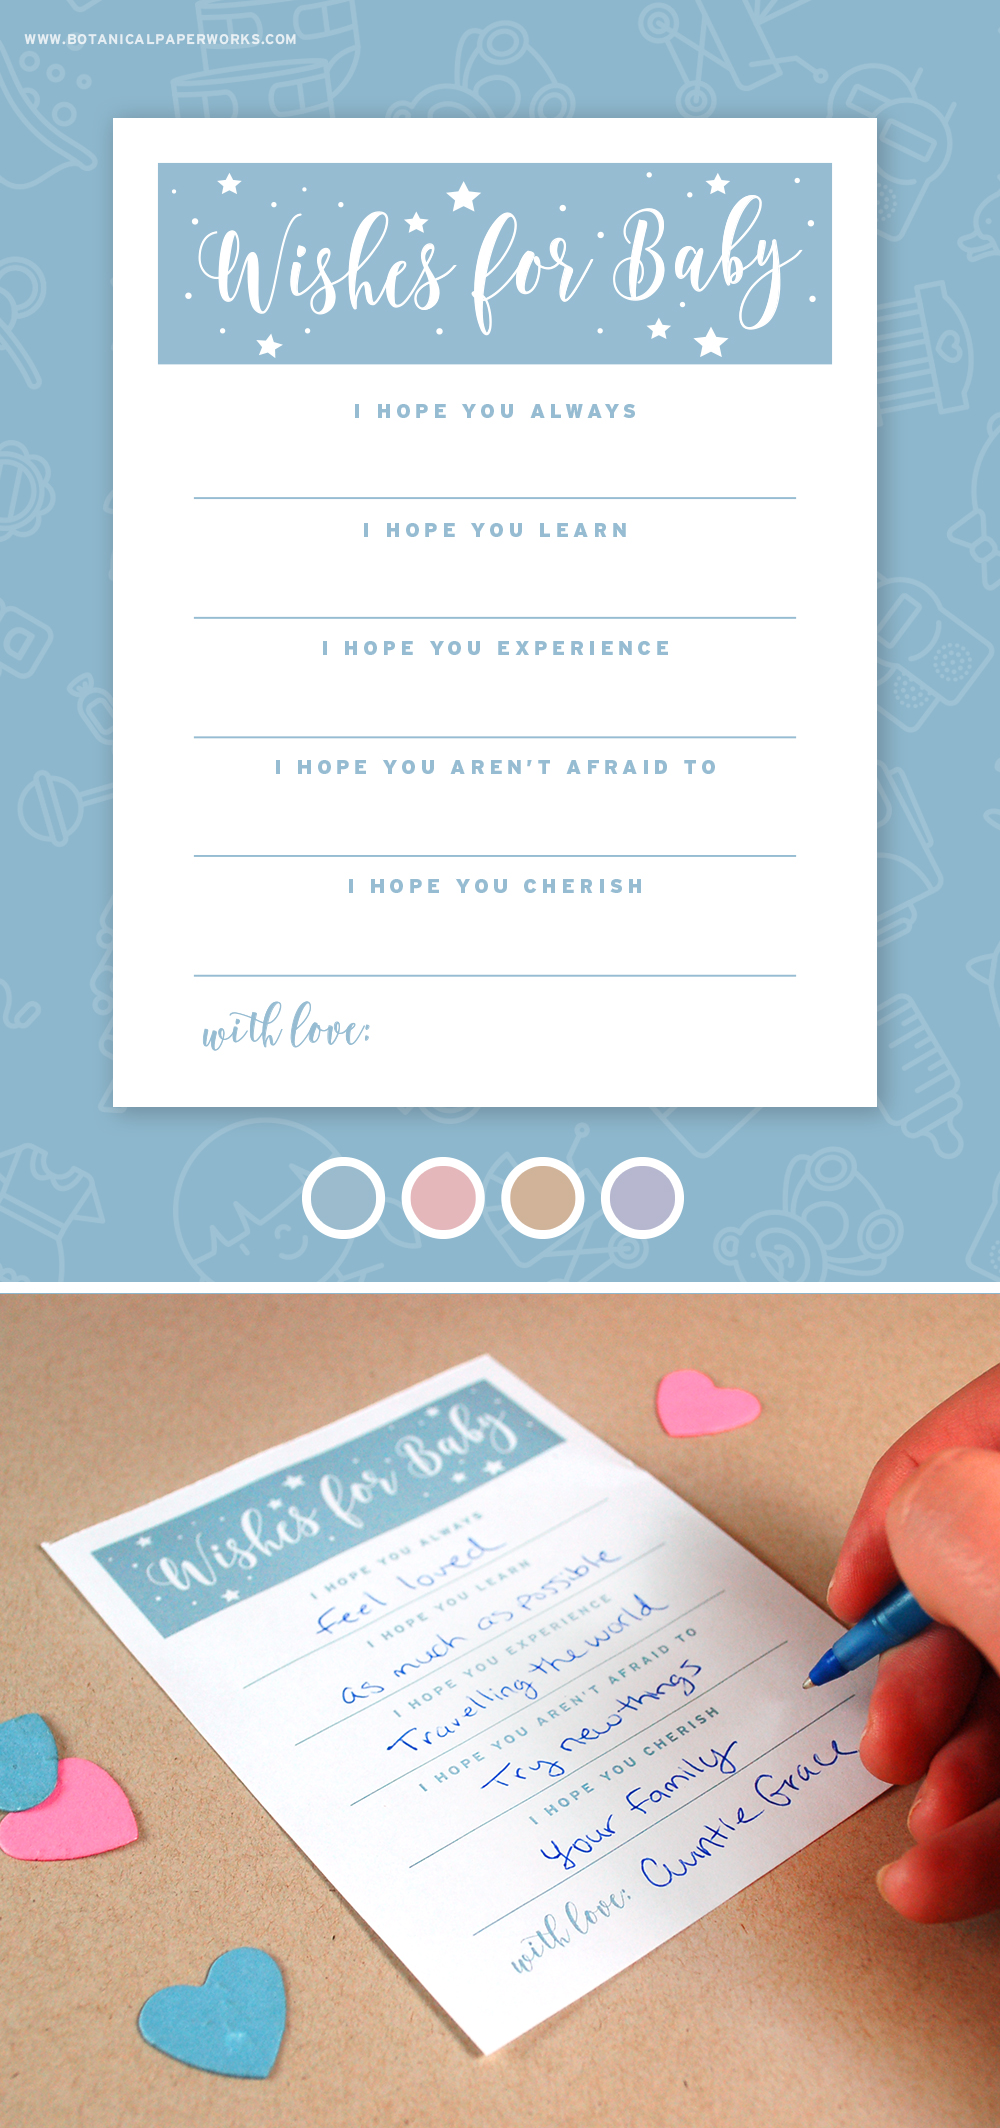 Download and print these adorable Wishes for Baby Free Printables for baby showers.